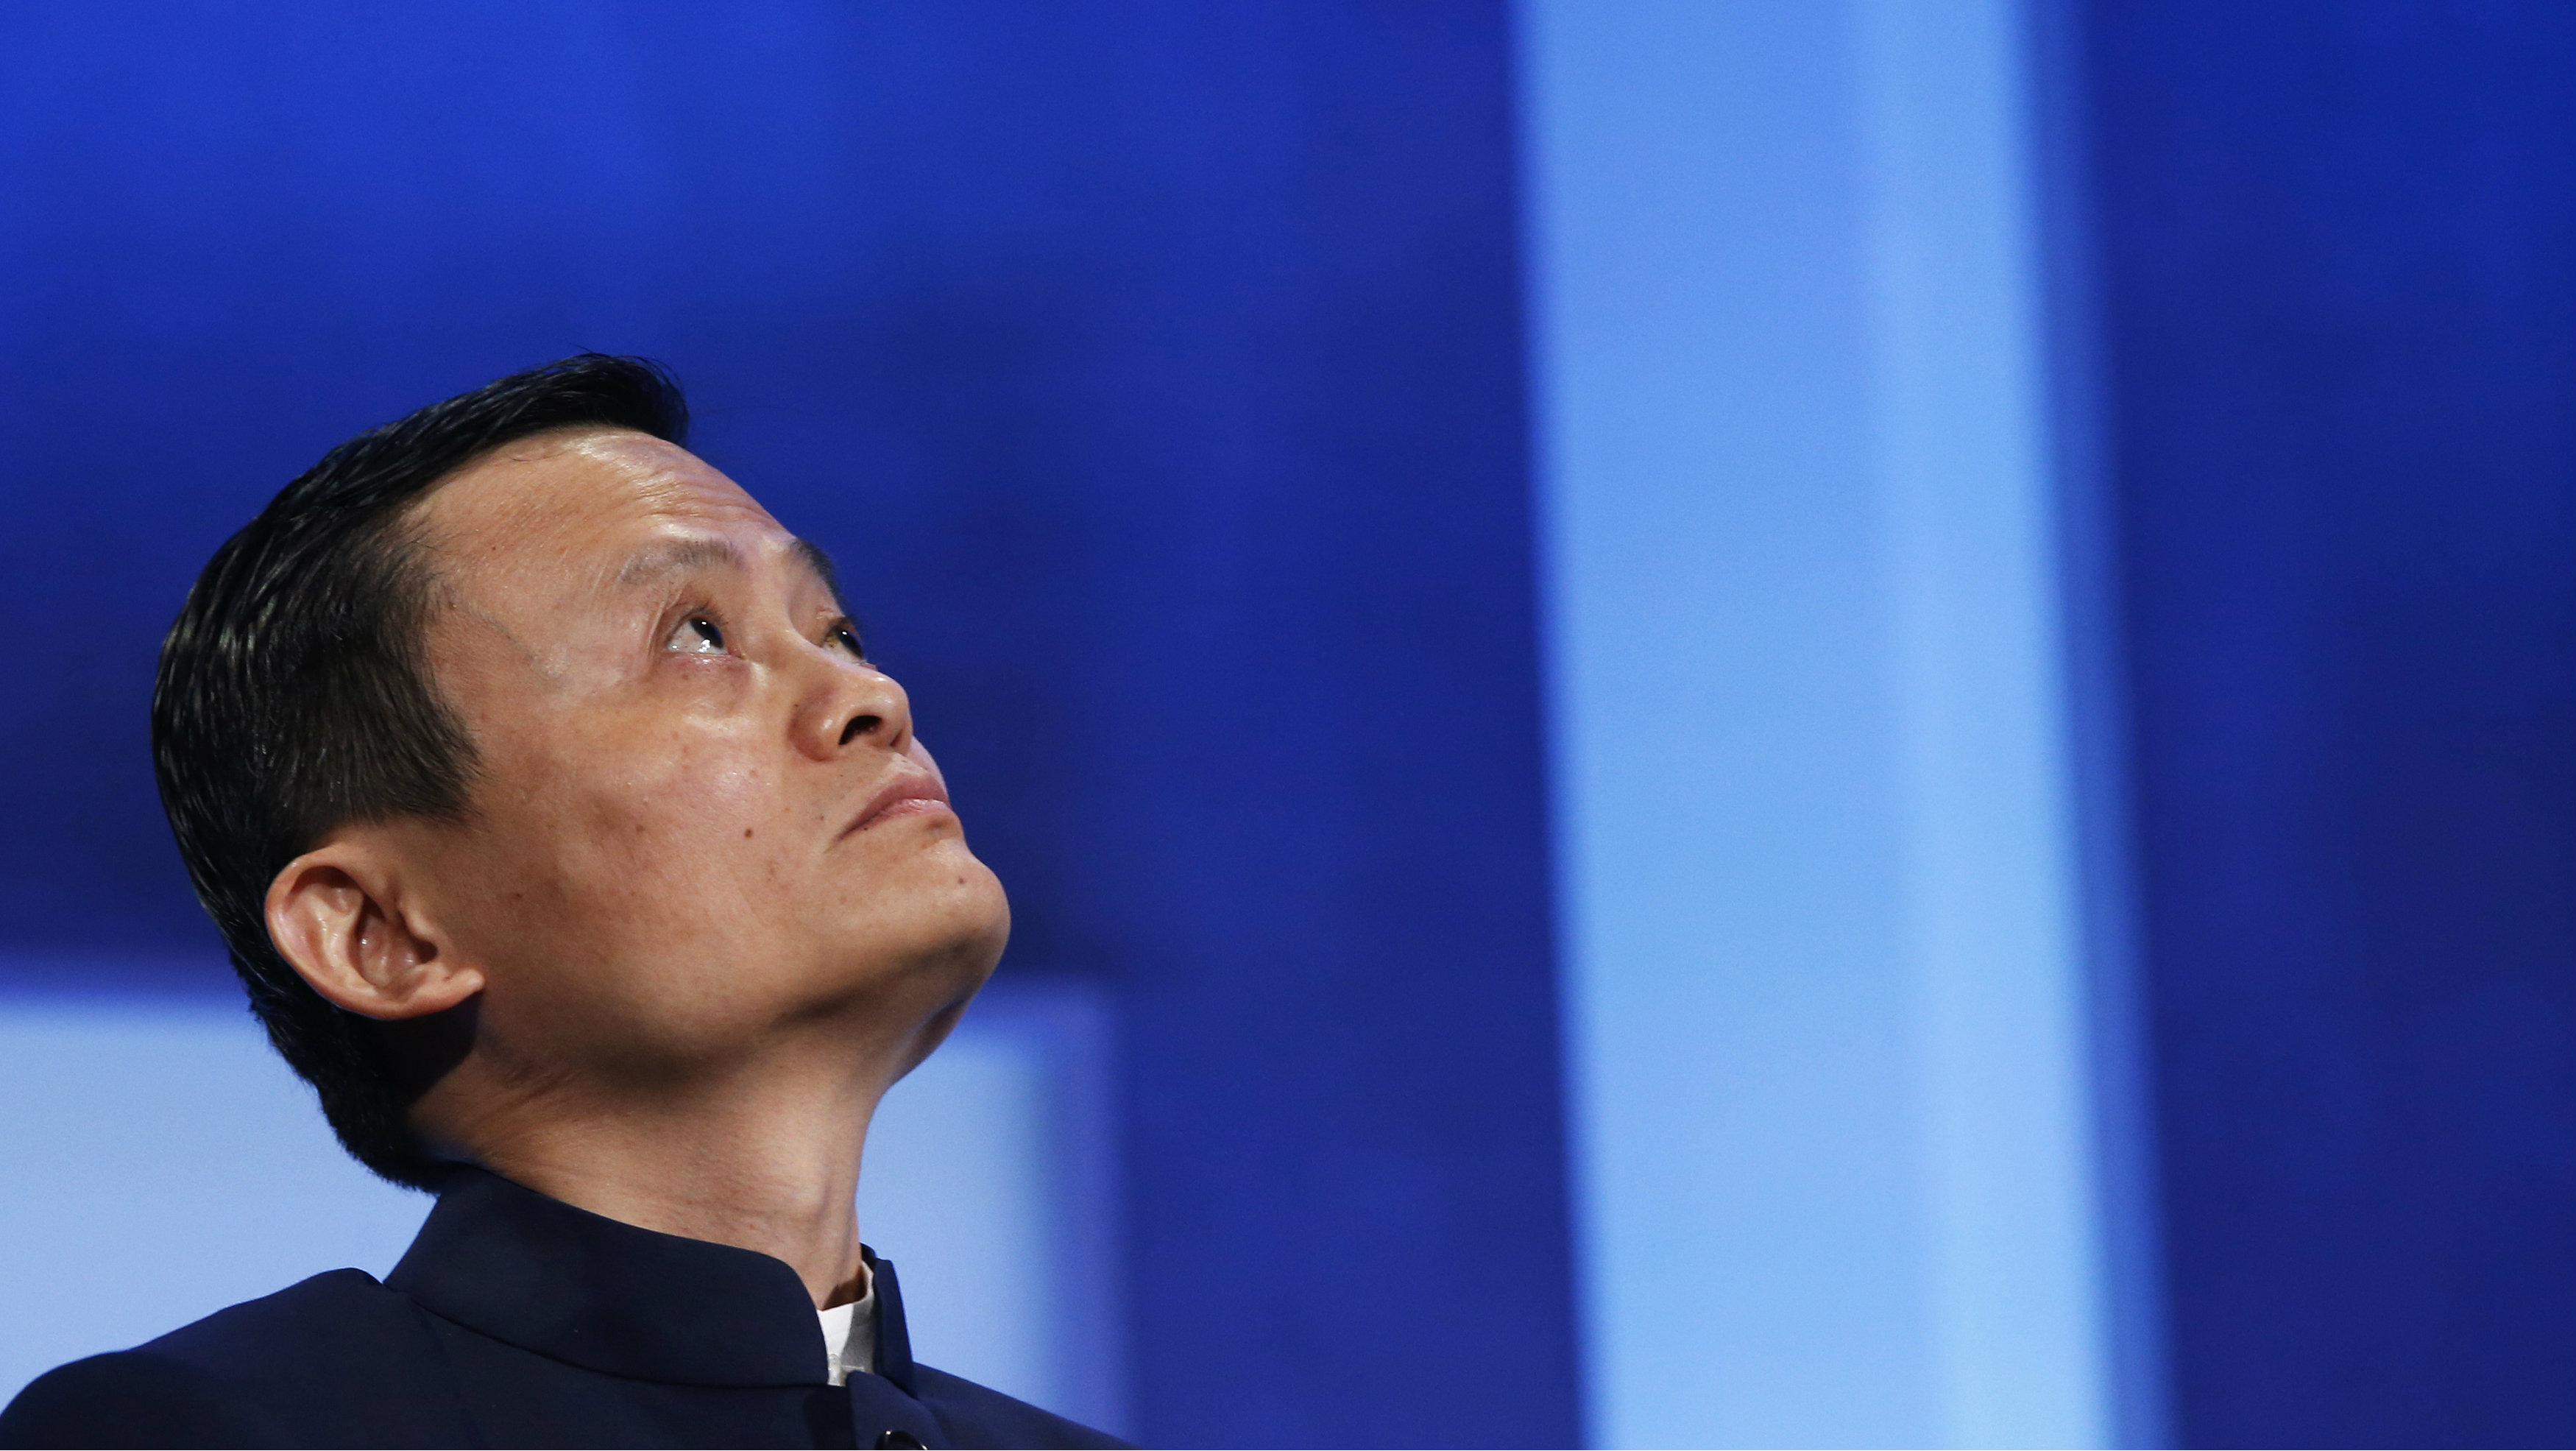 """Alibaba Group Holding Ltd founder Jack Ma listens to a speaker during the plenary session titled """"Valuing What Matter"""" at the Clinton Global Initiative 2014 (CGI) in New York, September 23, 2014. The CGI was created by former U.S. President Bill Clinton in 2005 to gather global leaders to discuss solutions to the world's problems."""